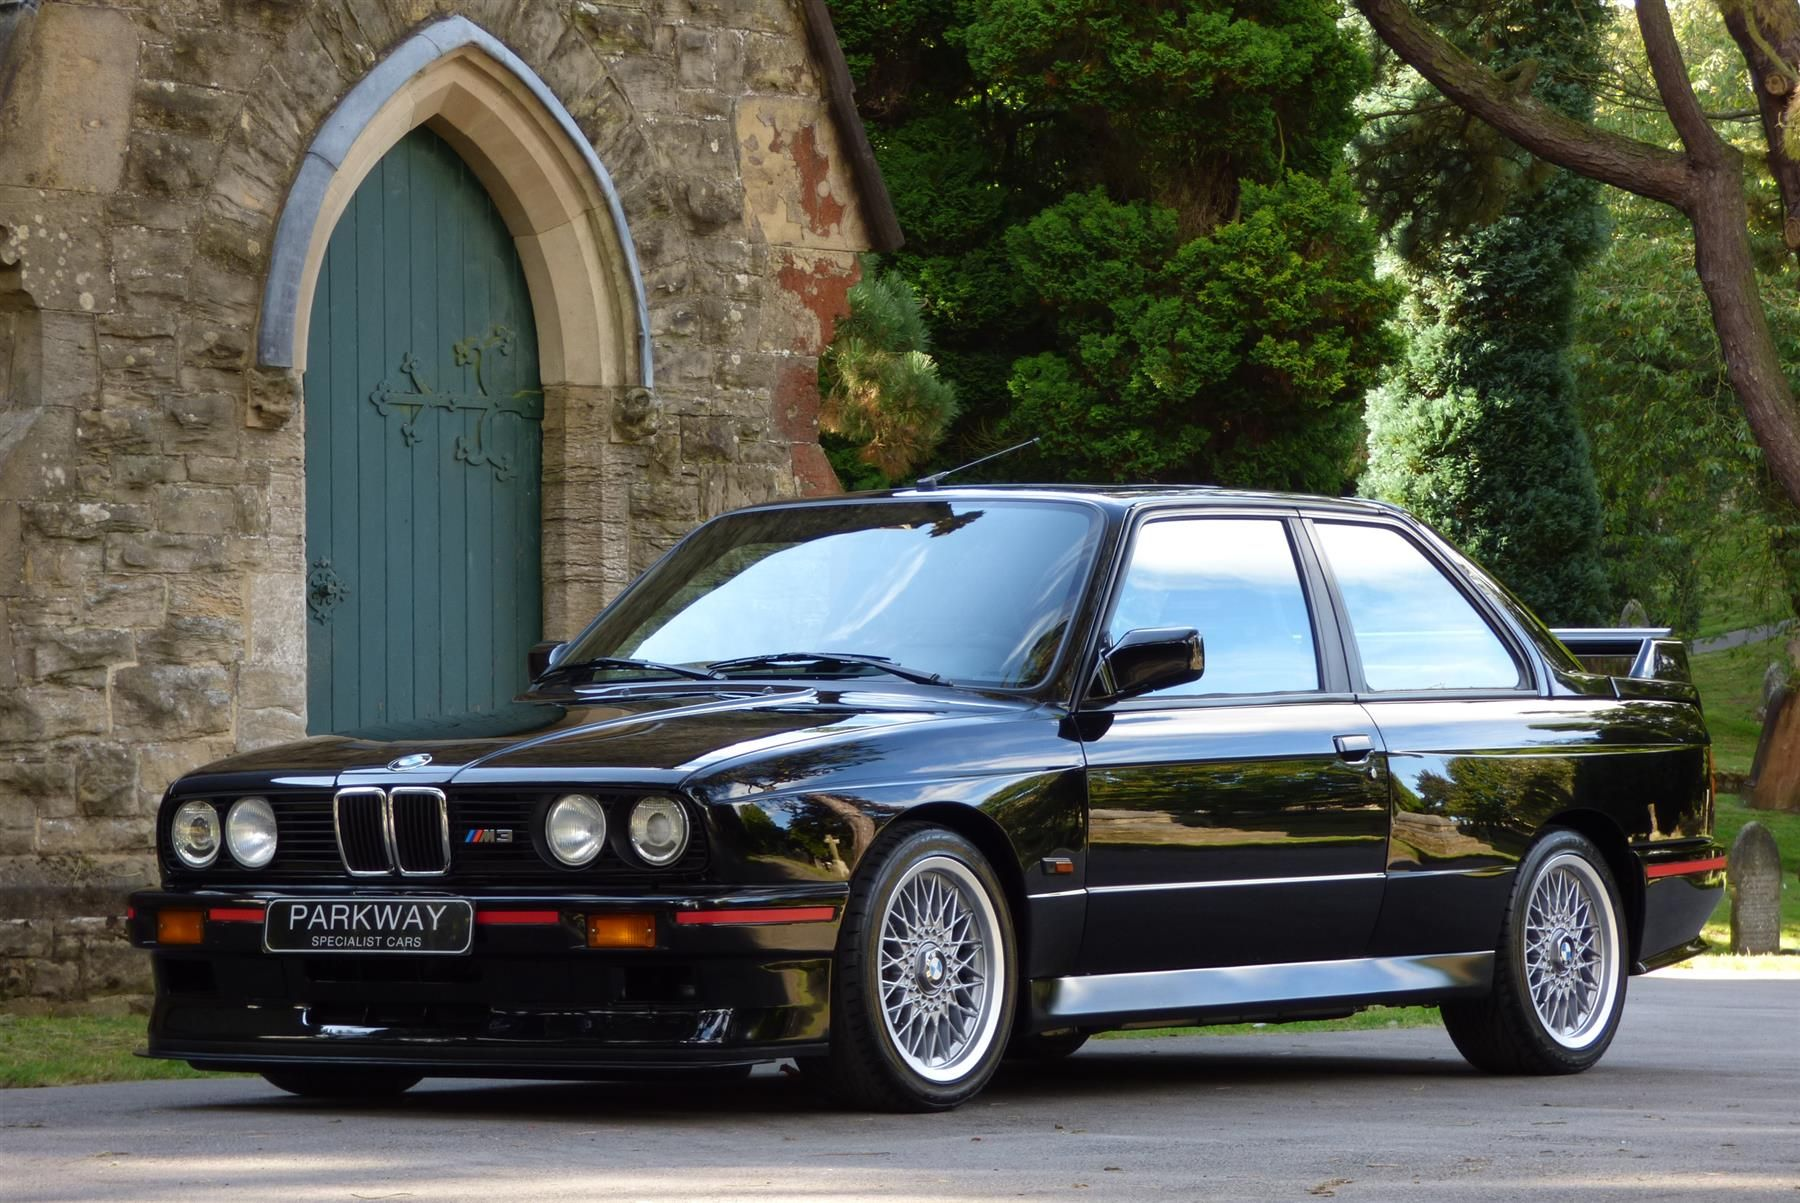 Used 1990 BMW E30 M3 86-92 M3 for sale in ...